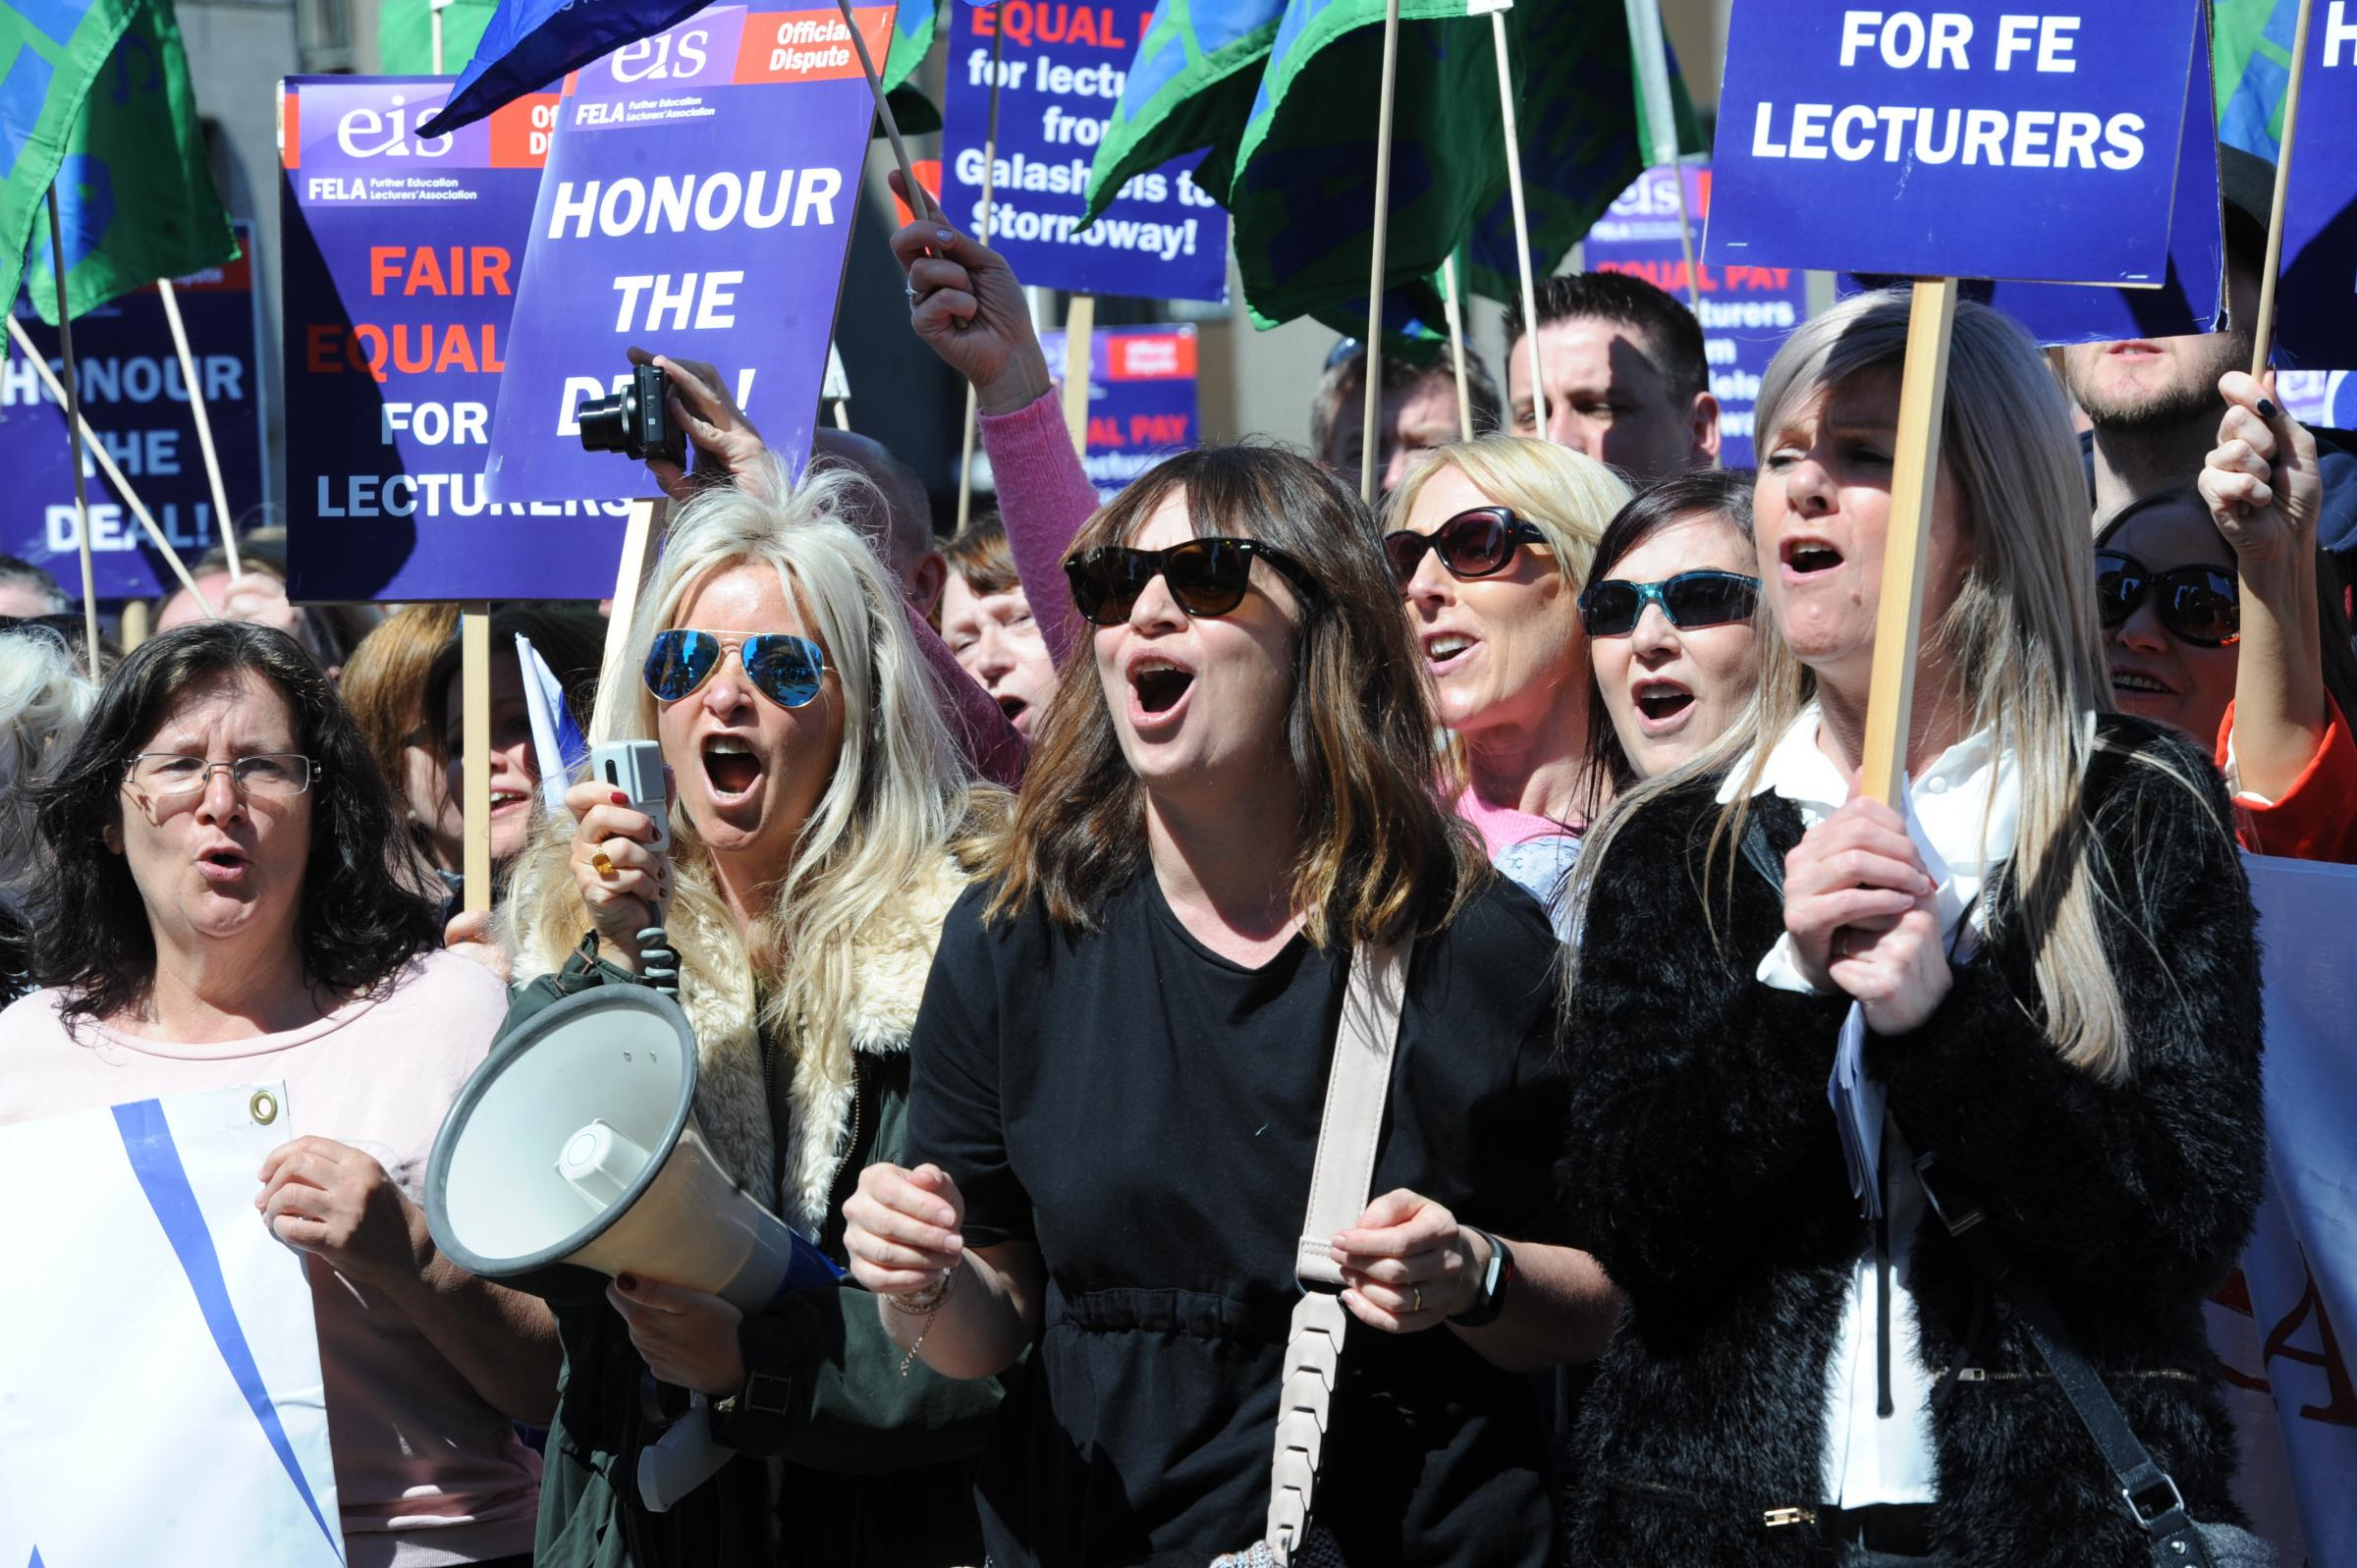 Analysis: No let-up for colleges as job threats follow funding cuts and pay strikes